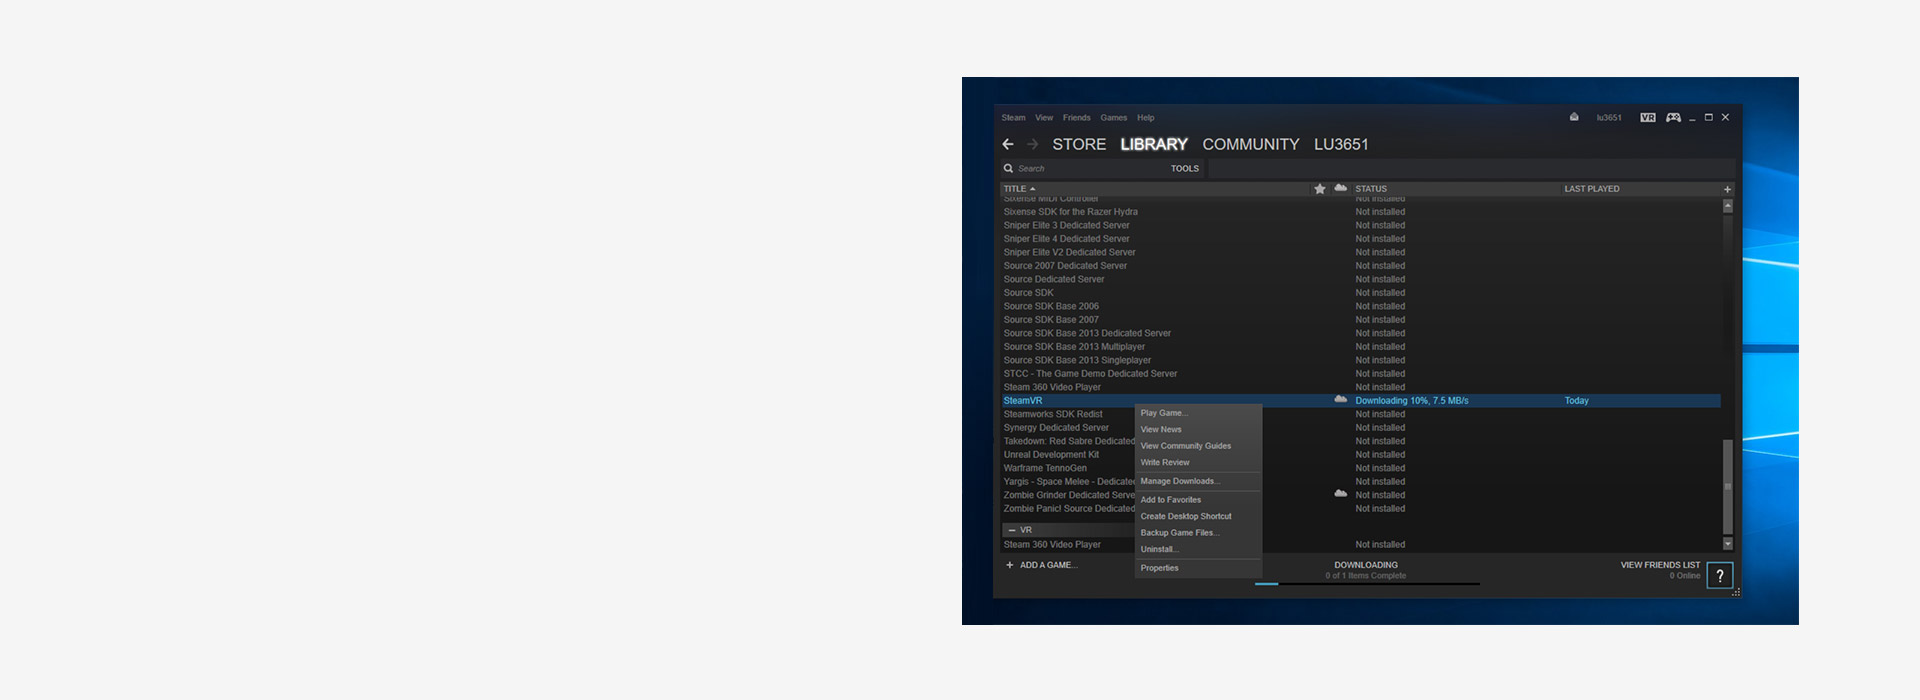 Step 3 – Join the SteamVR beta - Large